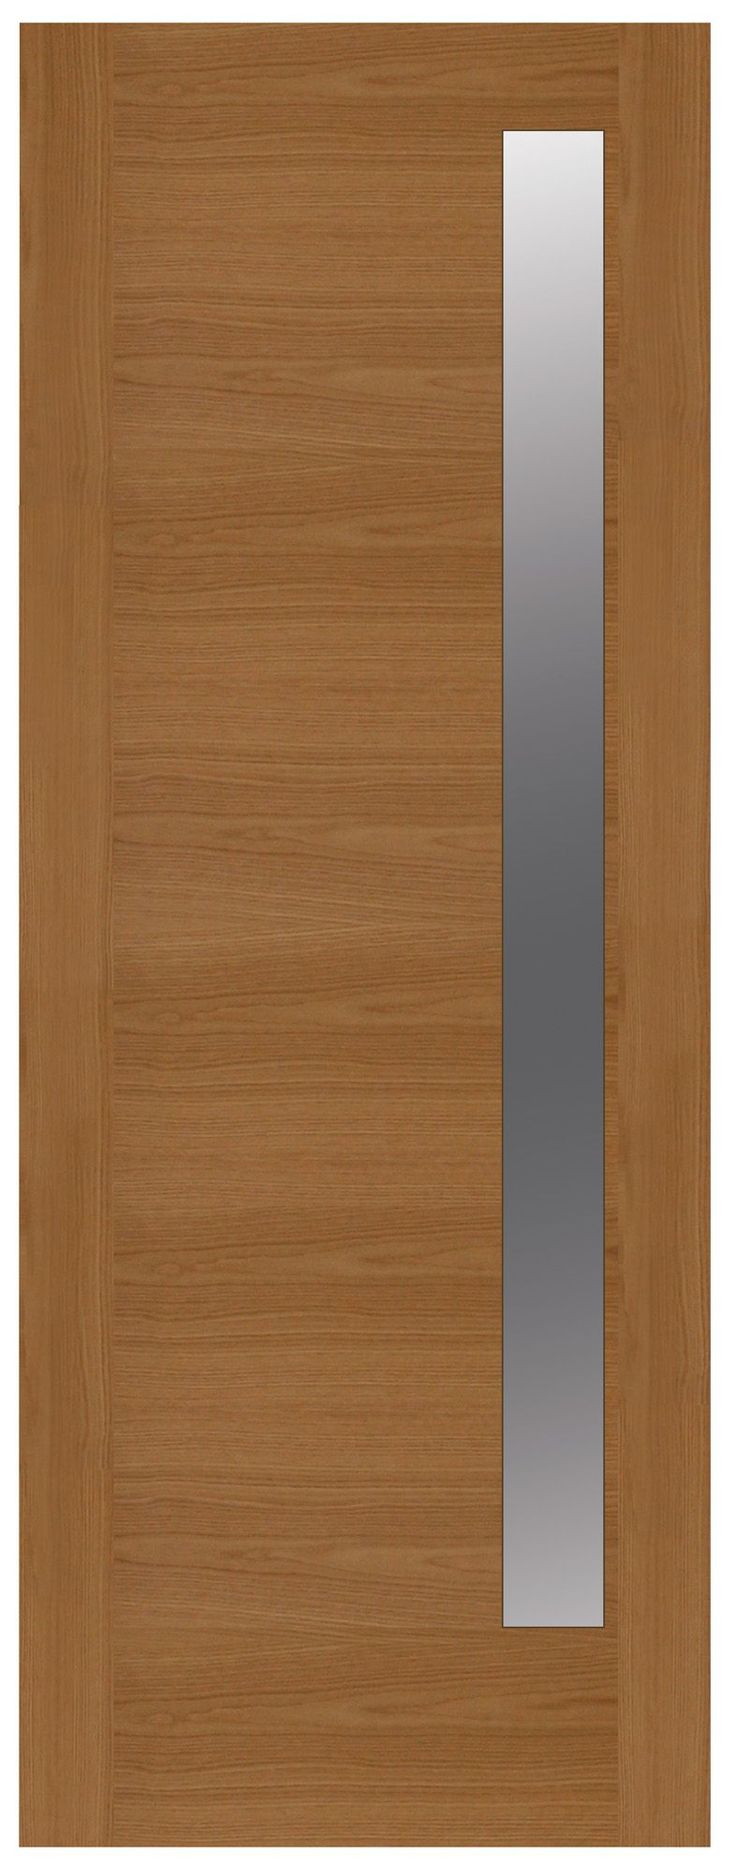 Contemporary Grooved Panel White Oak Veneer Timber Glazed External Front Door, (H)2032mm (W)813mm | Departments | DIY at B&Q